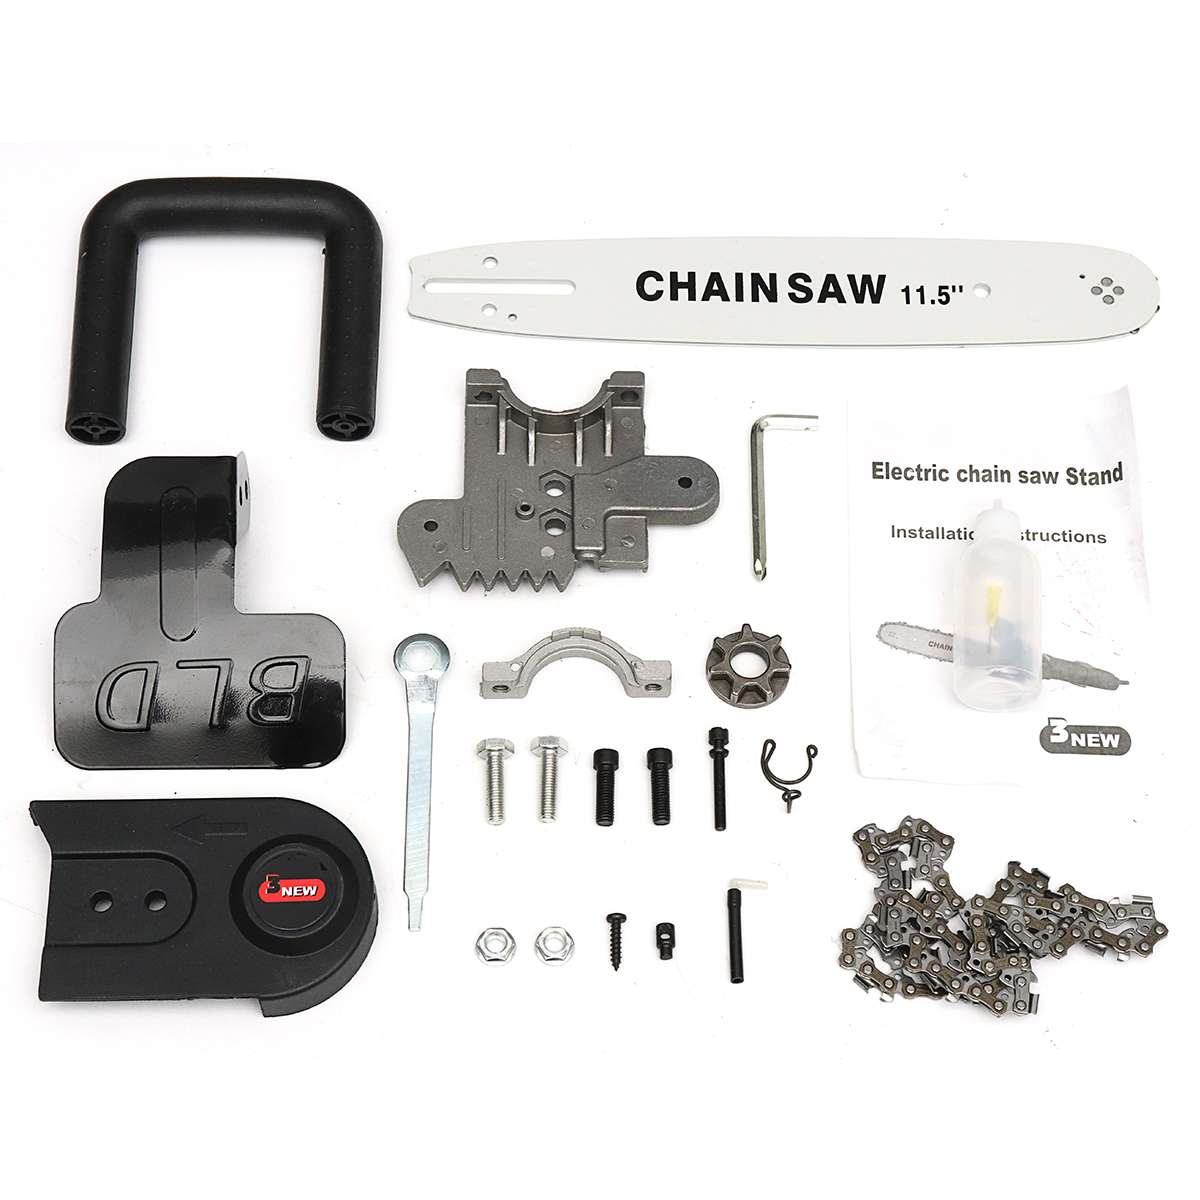 Electric Saw  Chainsaw Bracket Parts Changed 100mm/115mm Angle Grinder Upgrade  Chain Saw ToolsElectric Saw  Chainsaw Bracket Parts Changed 100mm/115mm Angle Grinder Upgrade  Chain Saw Tools